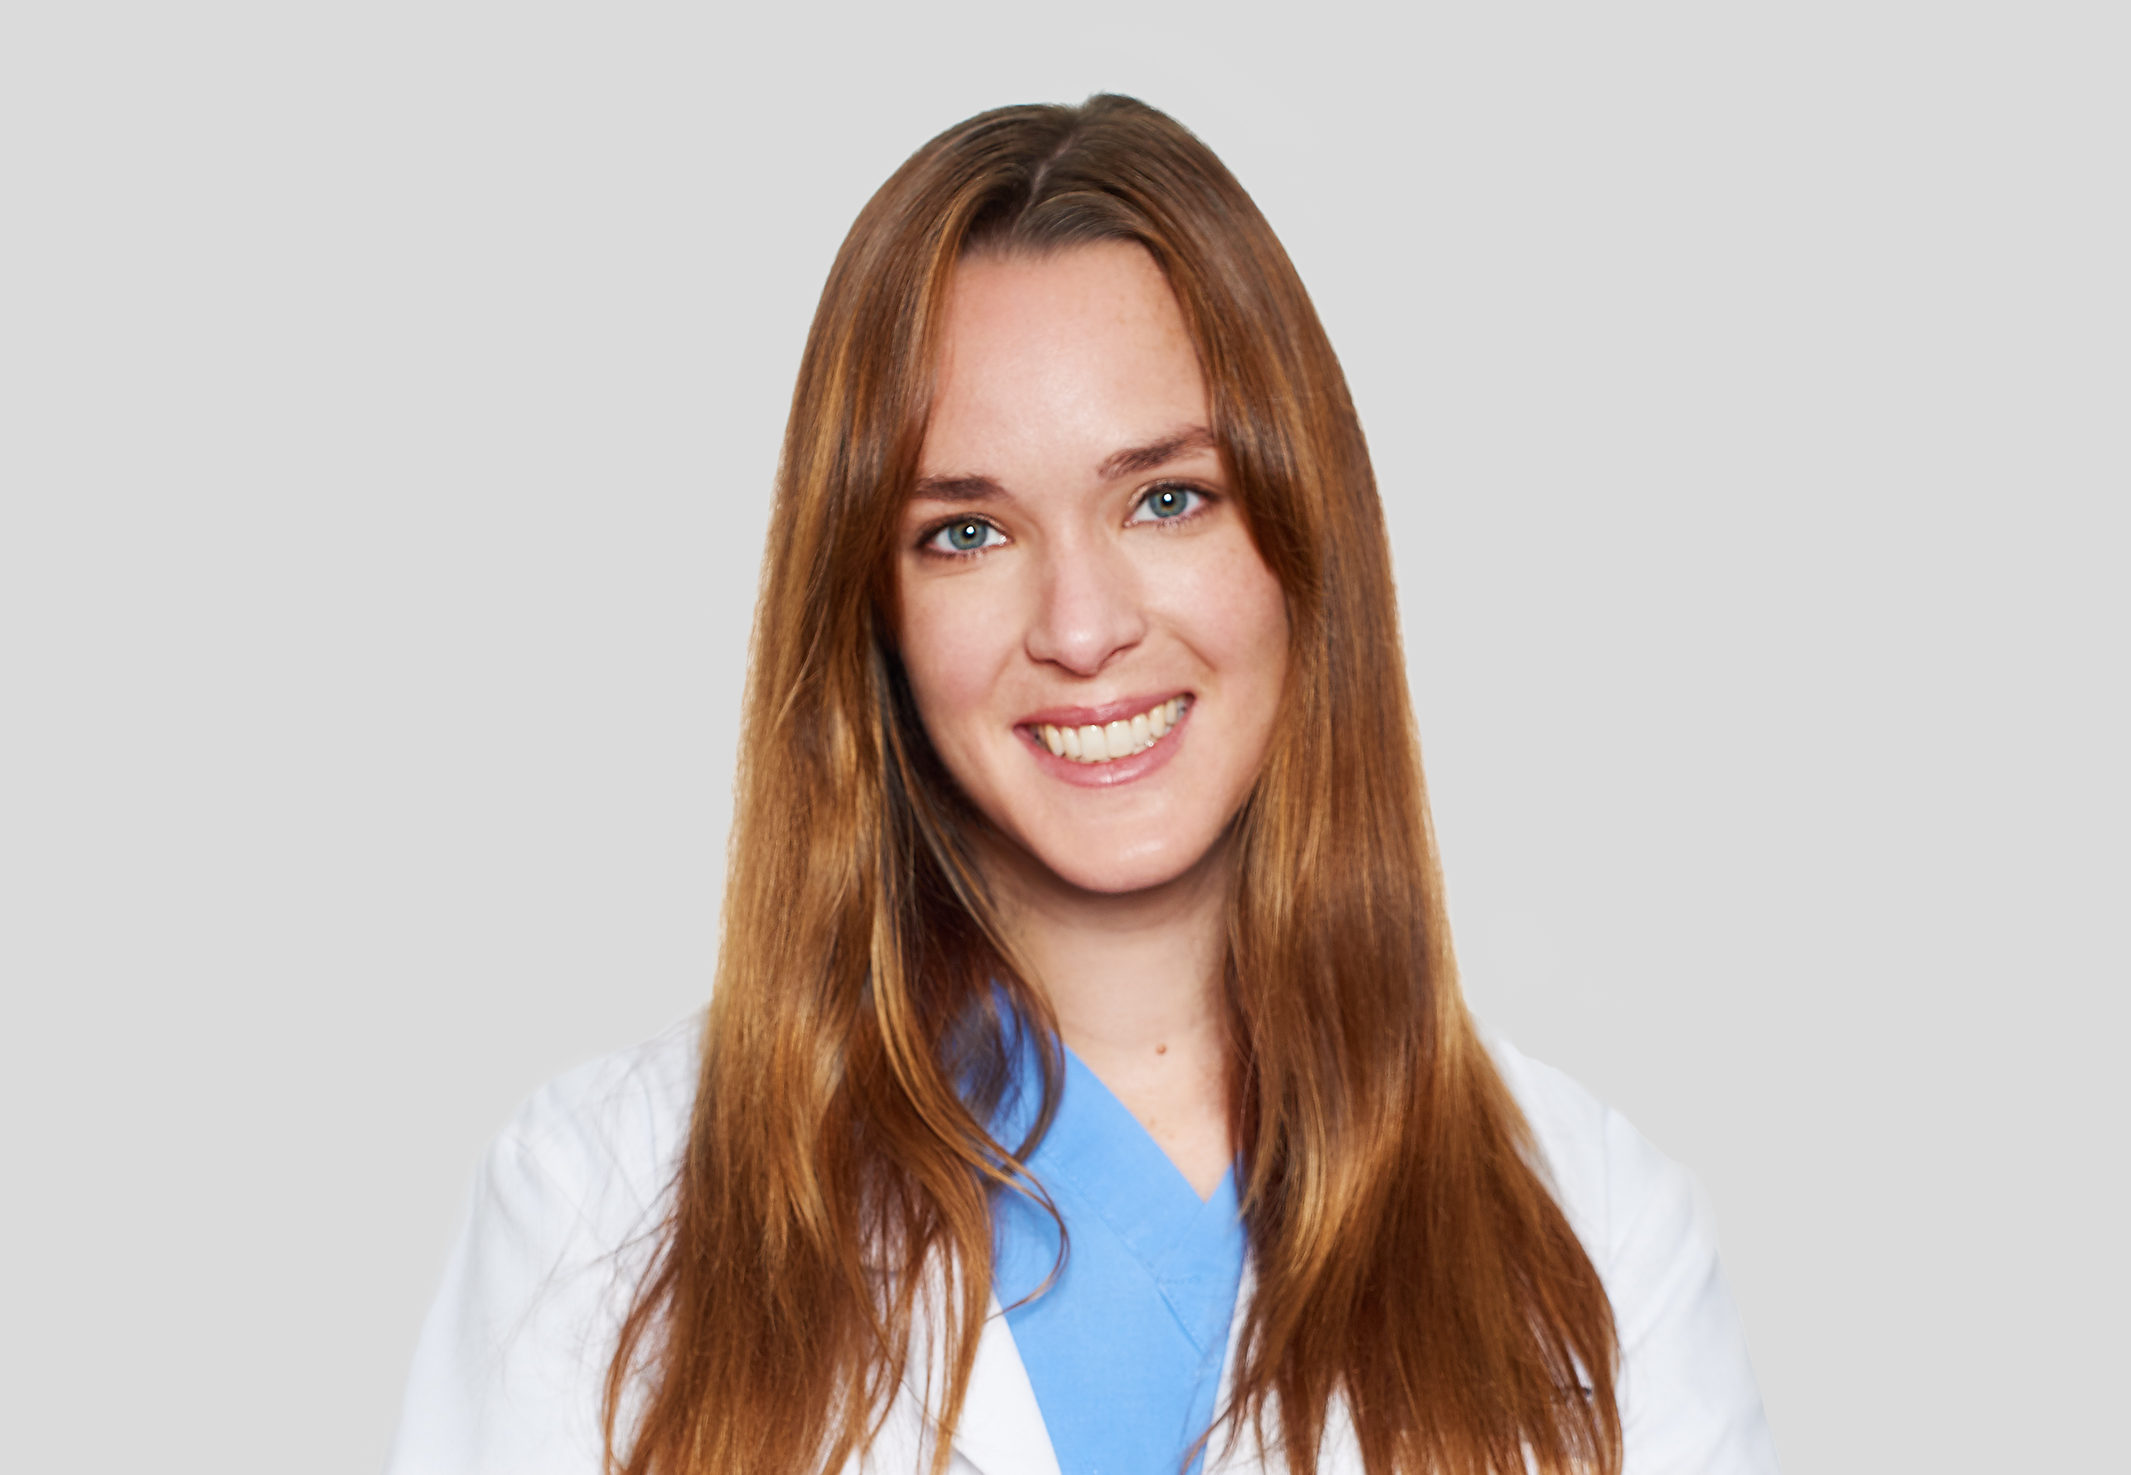 Dr. Amanda Rollins of the Animal Medical Center in New York City